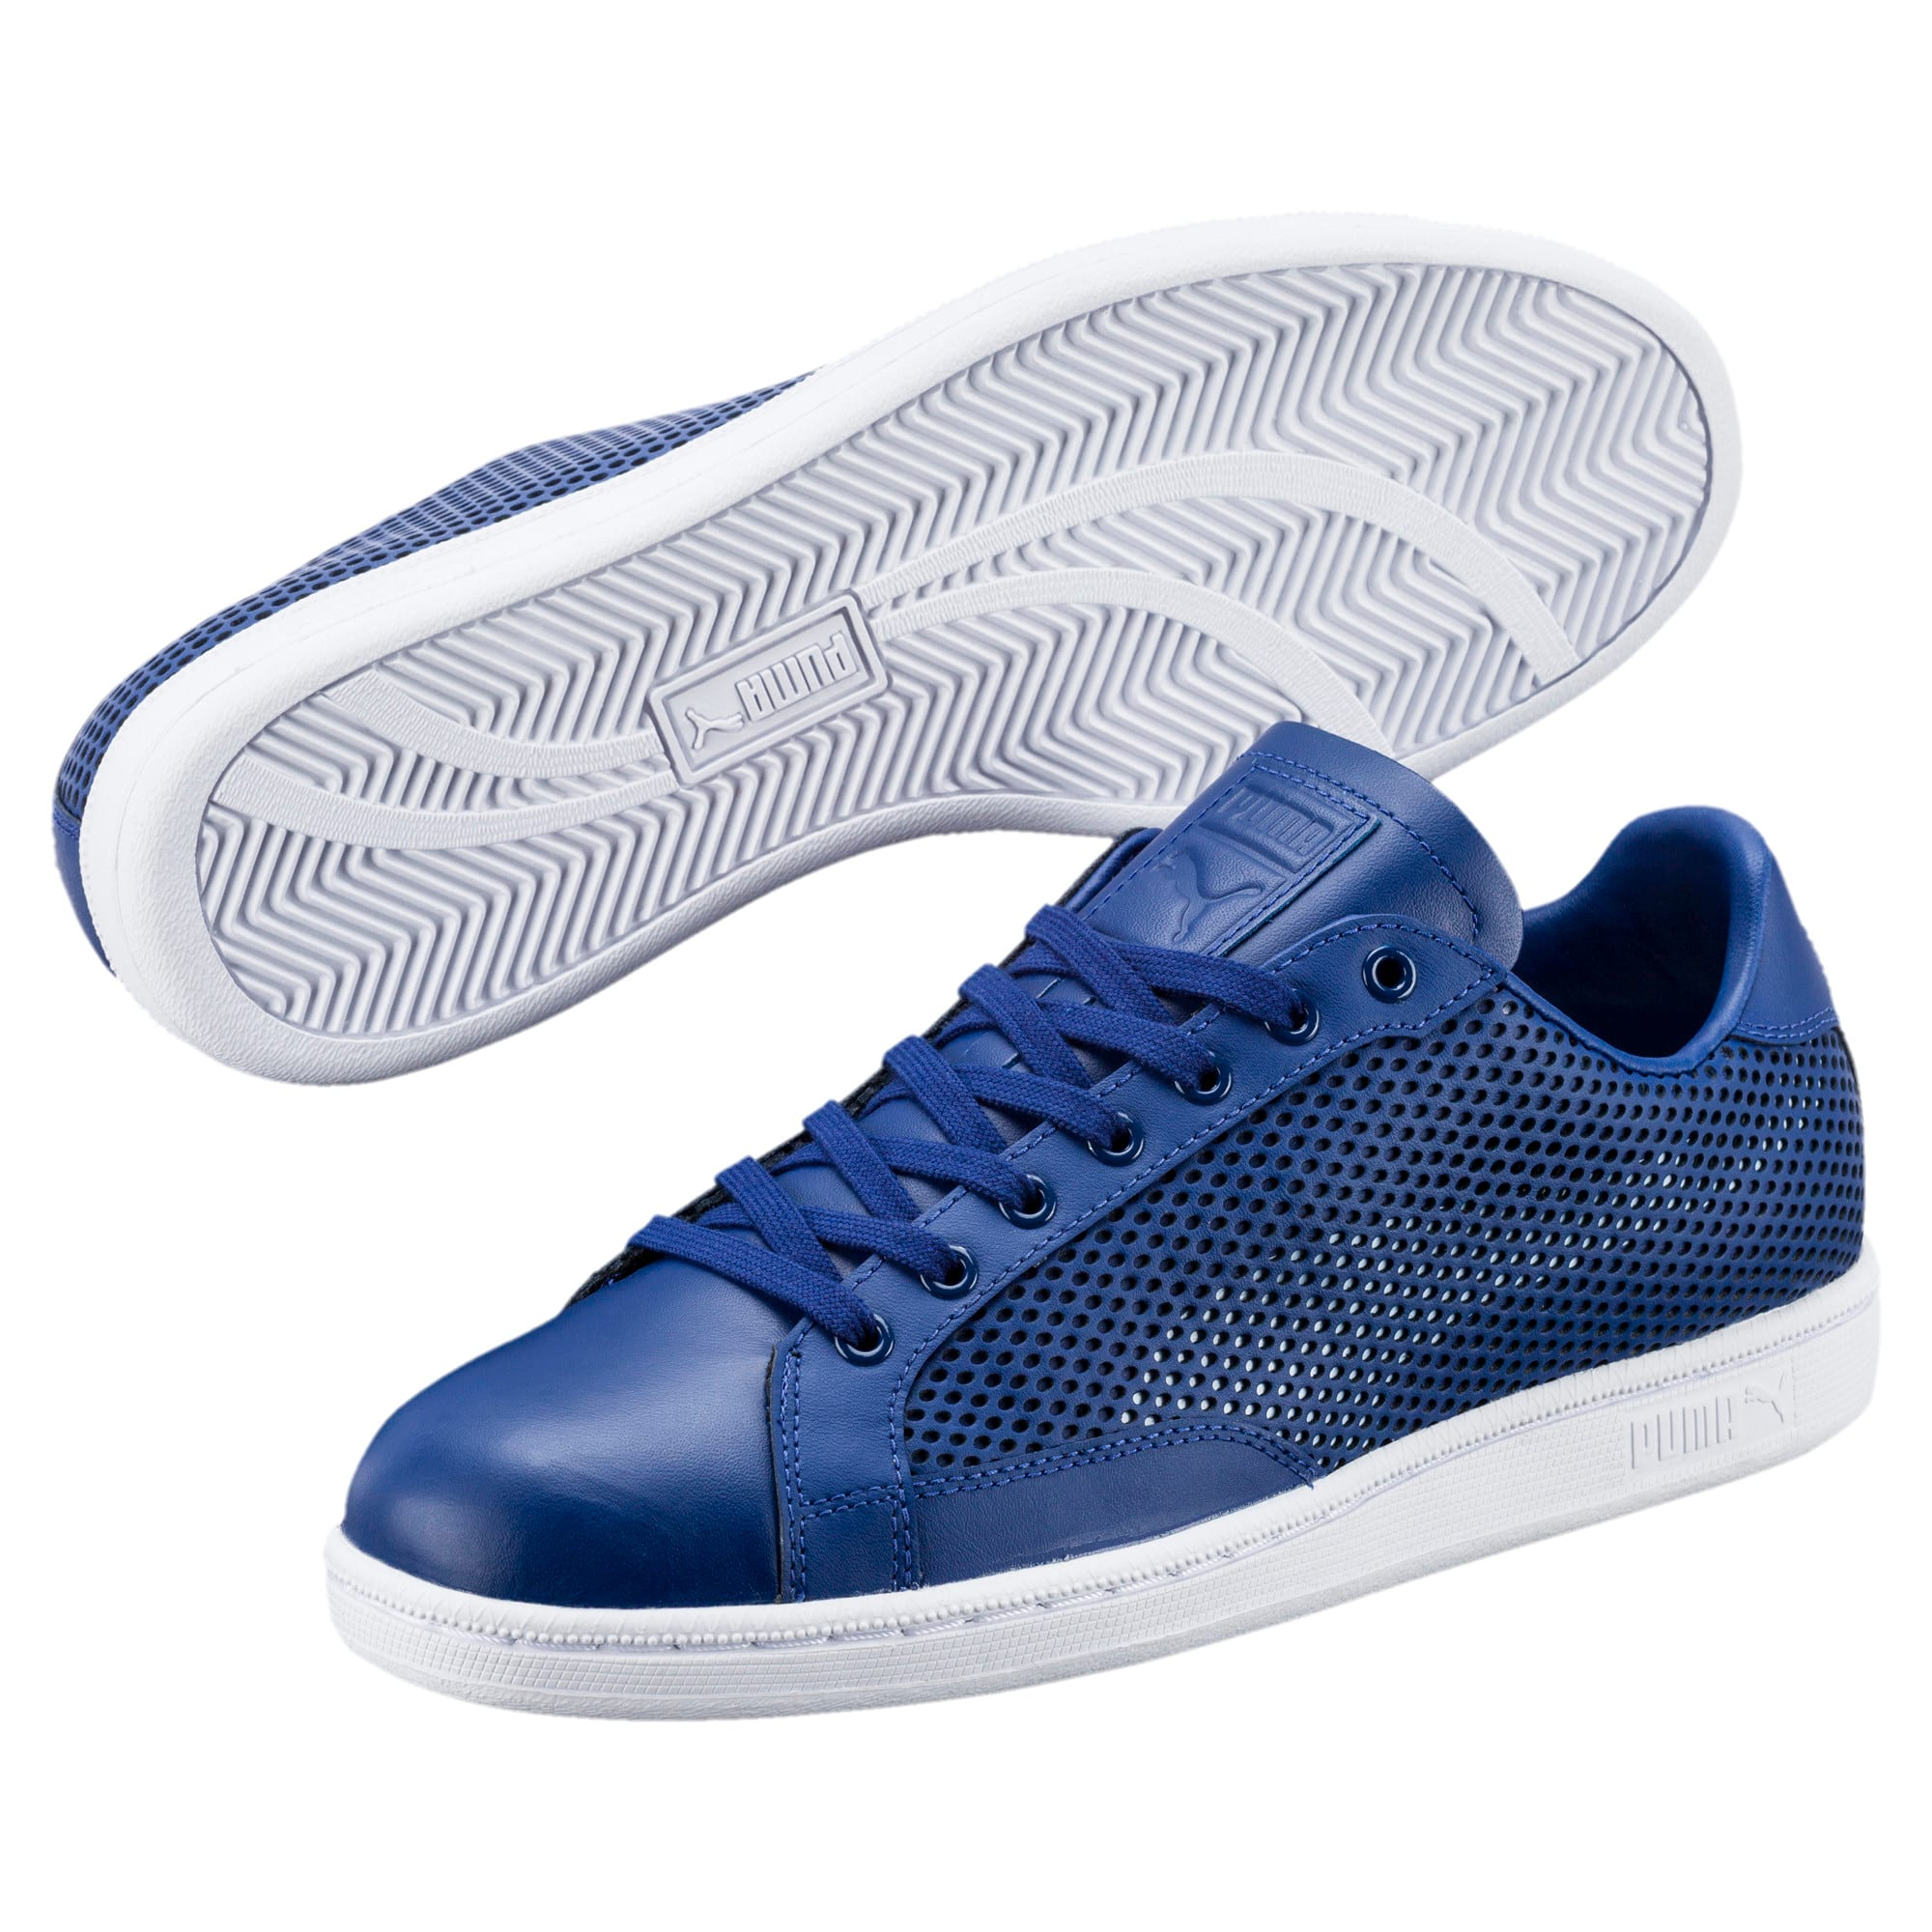 Thumbnail 2 of Match 74 Summer Shade Trainers, TWILIGHT BLUE, medium-IND